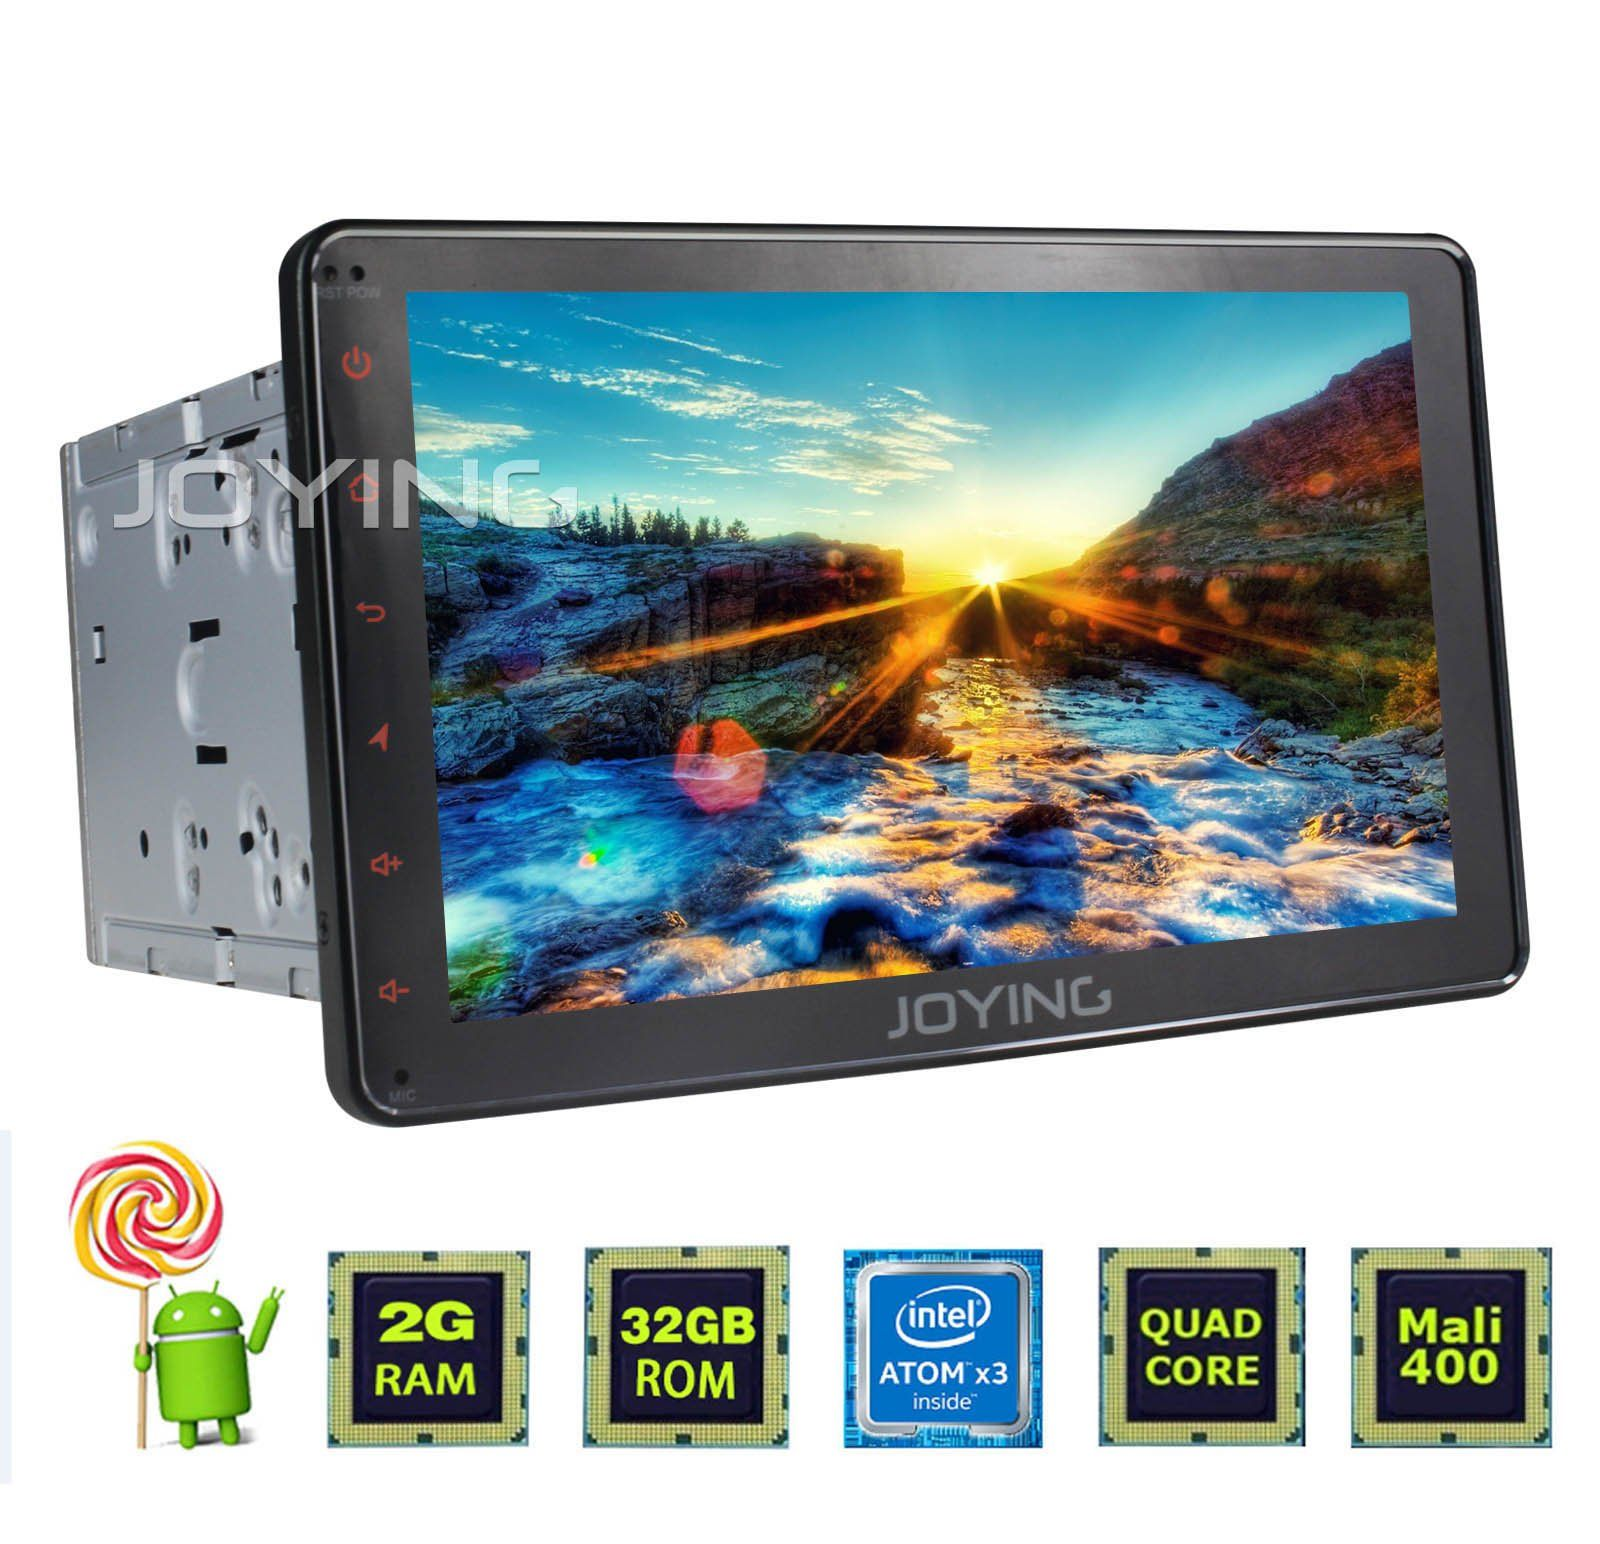 small resolution of joying 8 inch android head unit double din touch screen car stereo 2gb ram intel quad core android 5 1 in dash navigation auto gps car radio audio receiver